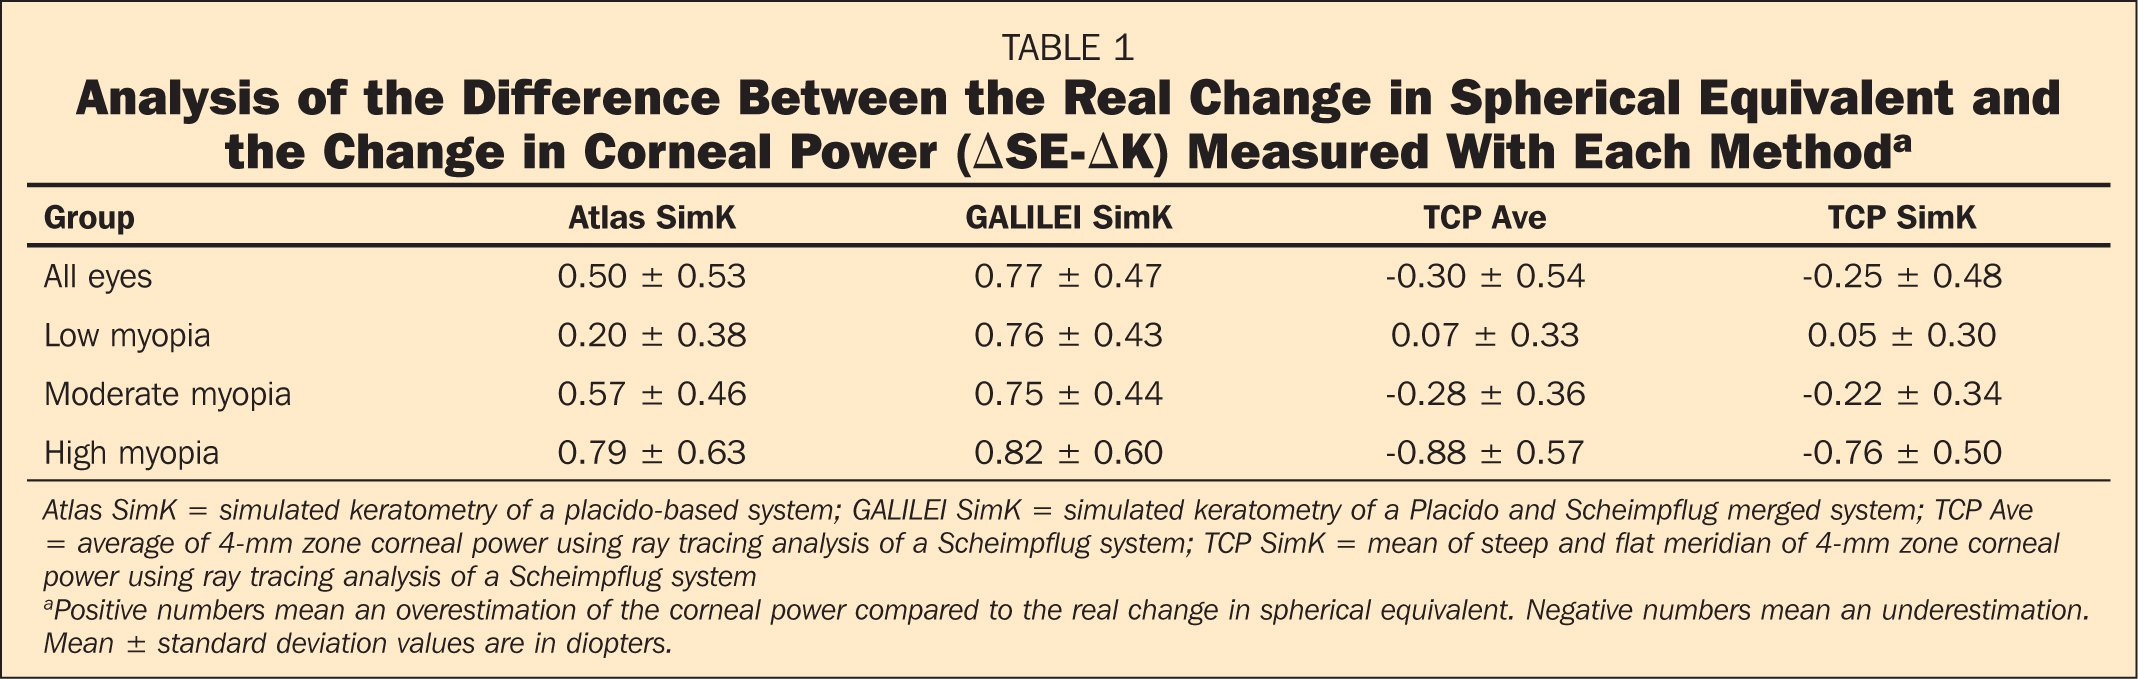 Analysis of the Difference Between the Real Change in Spherical Equivalent and the Change in Corneal Power (ΔSE-ΔK) Measured With Each Methoda